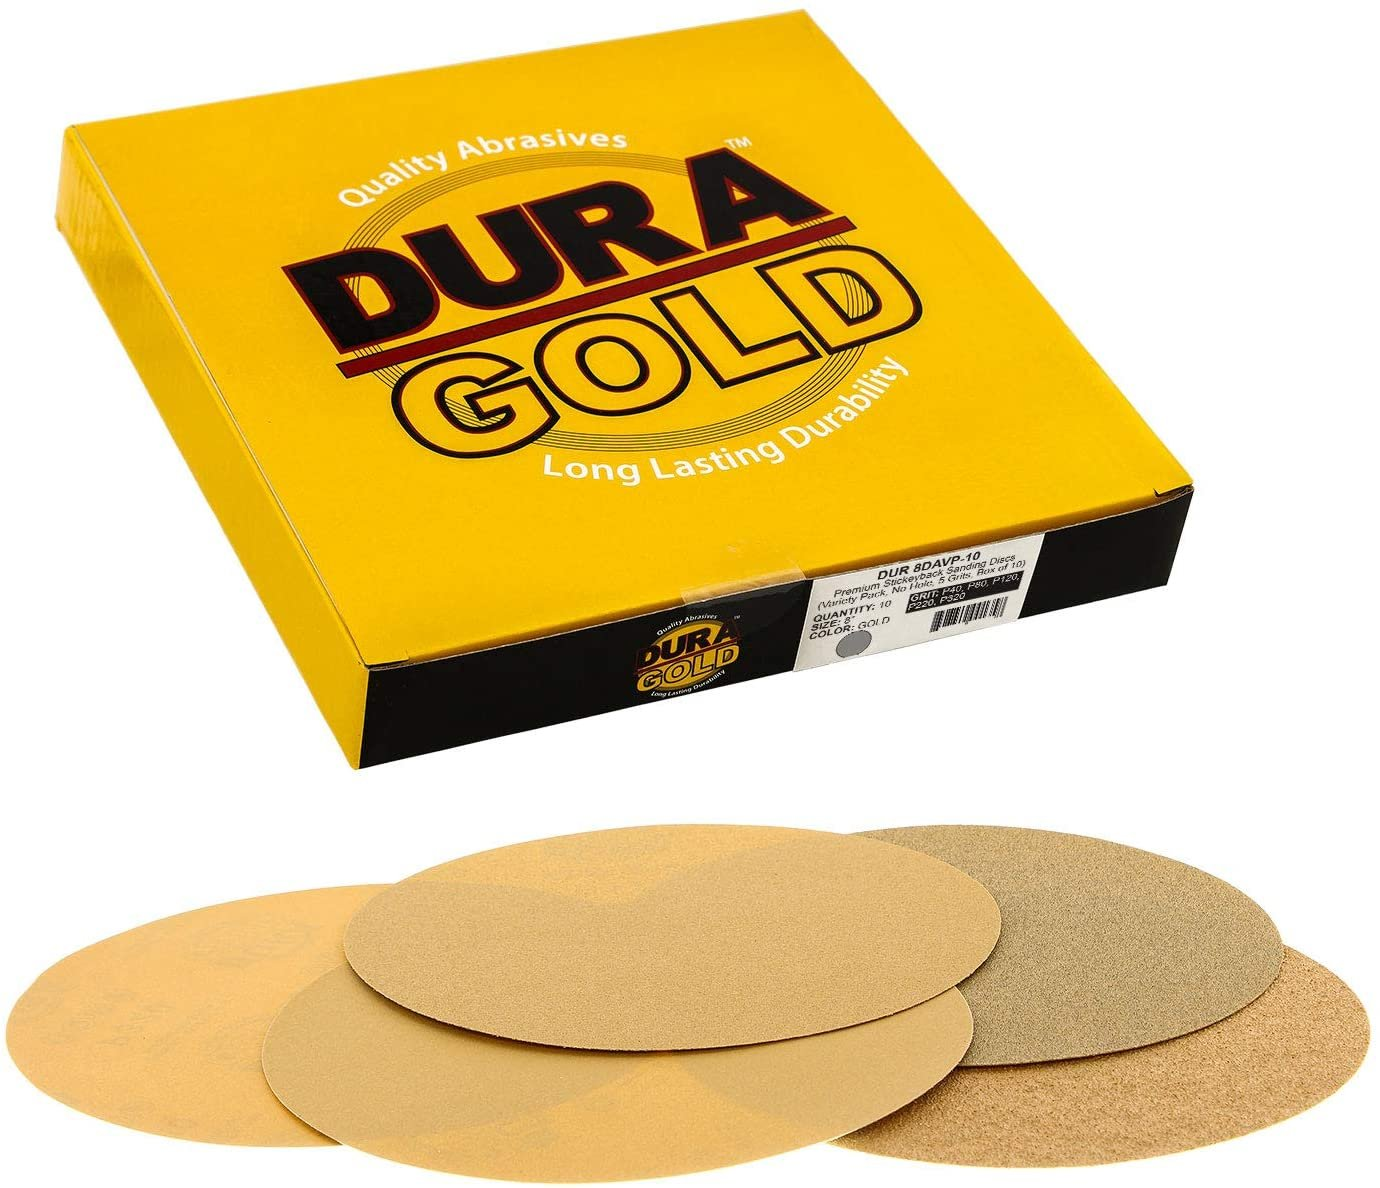 Dura-Gold - Premium- Variety/Assortment Pack (40,80,120,220,320) - Variety Pack